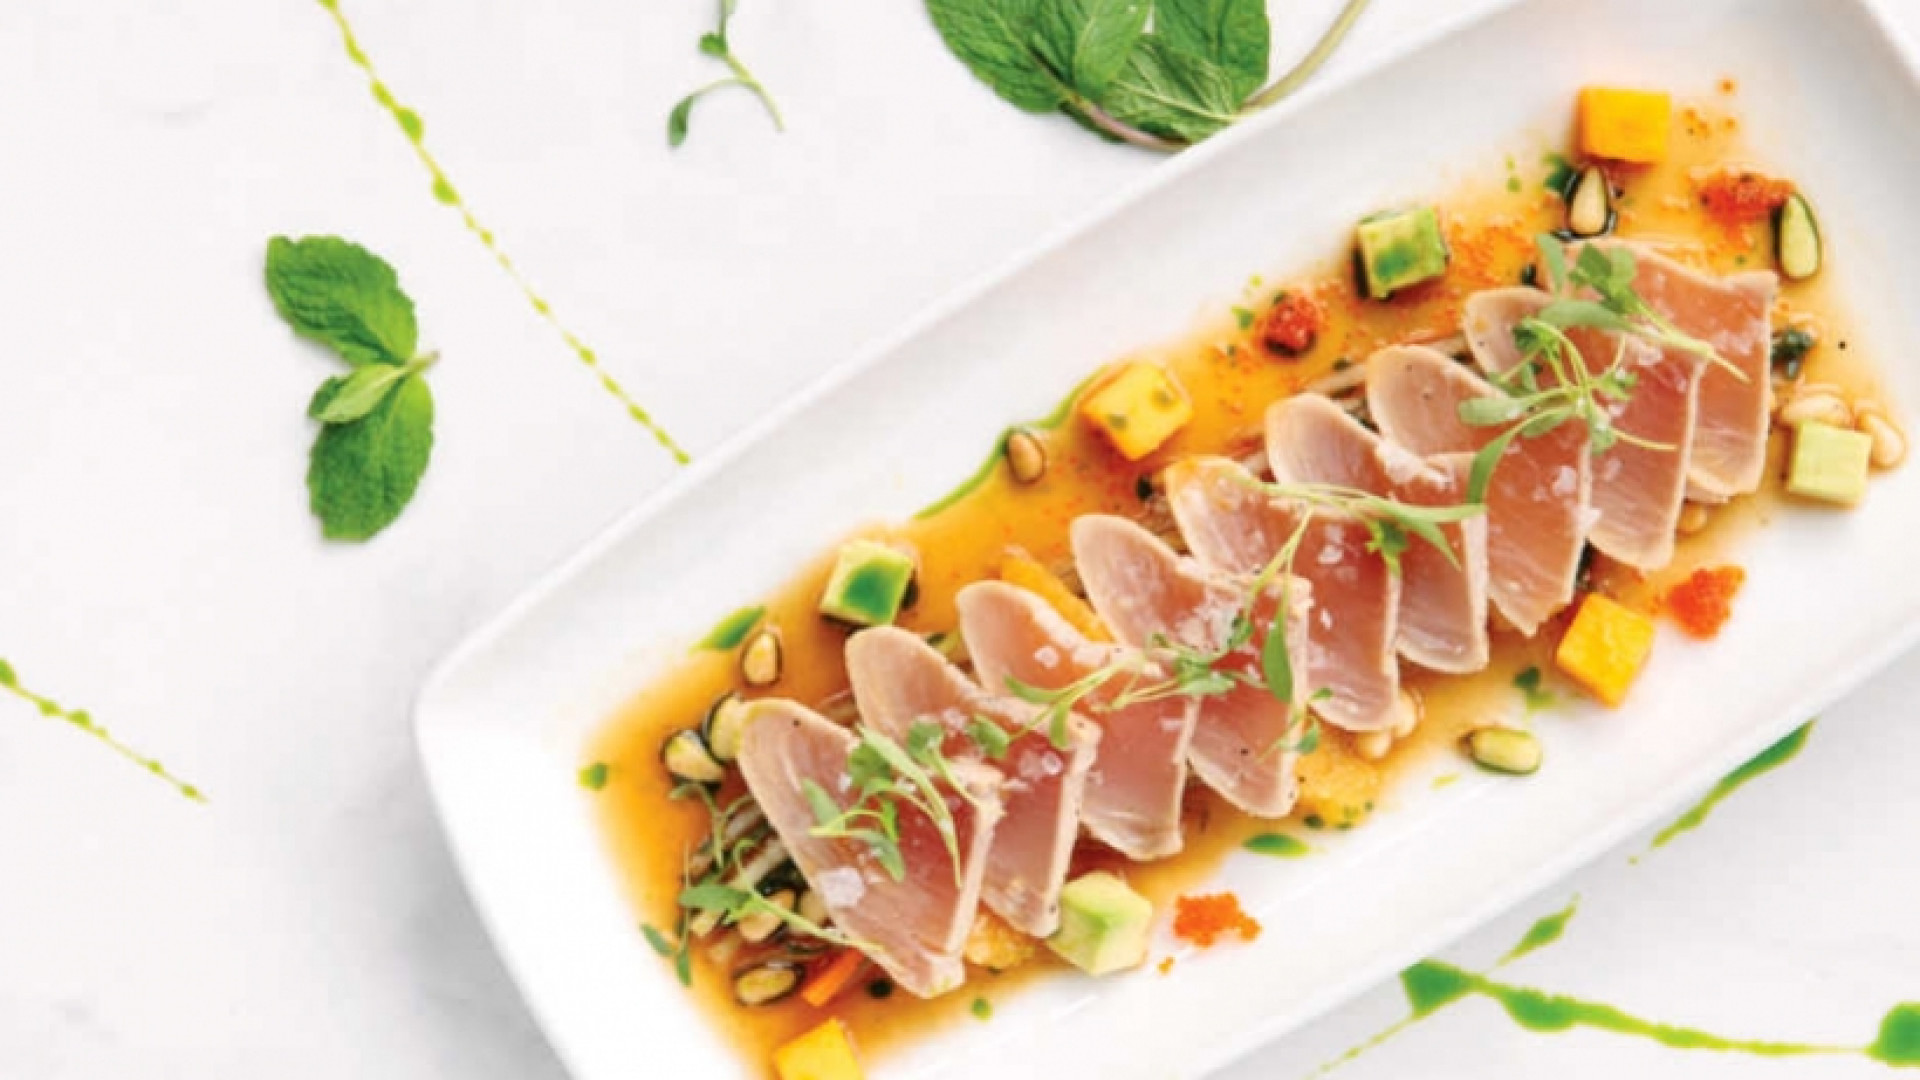 The best restaurants offering delivery and takeout in Toronto | tuna tataki at Cactus Club Cafe